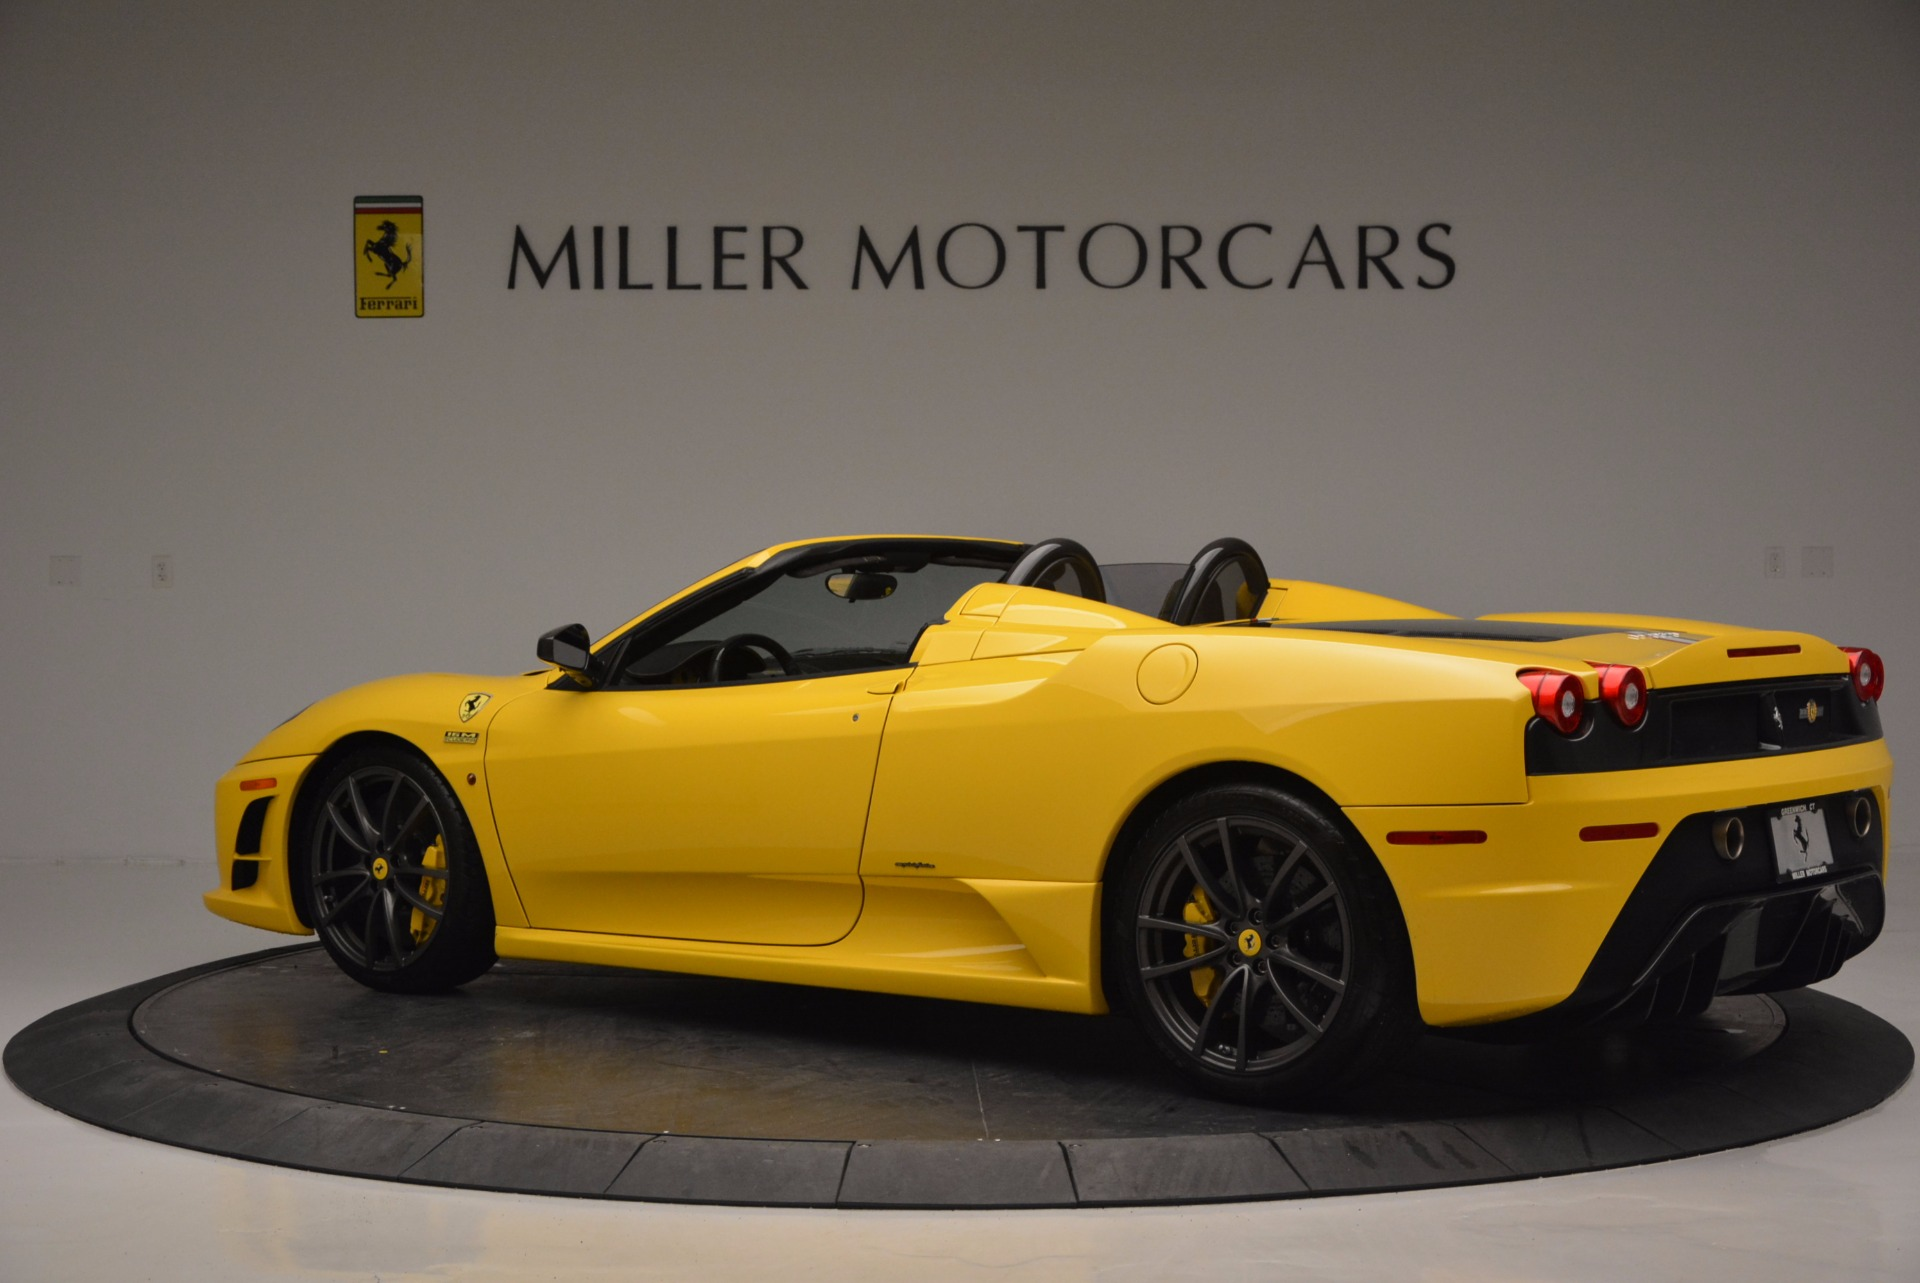 Used 2009 Ferrari F430 Scuderia 16M For Sale In Greenwich, CT 856_p4